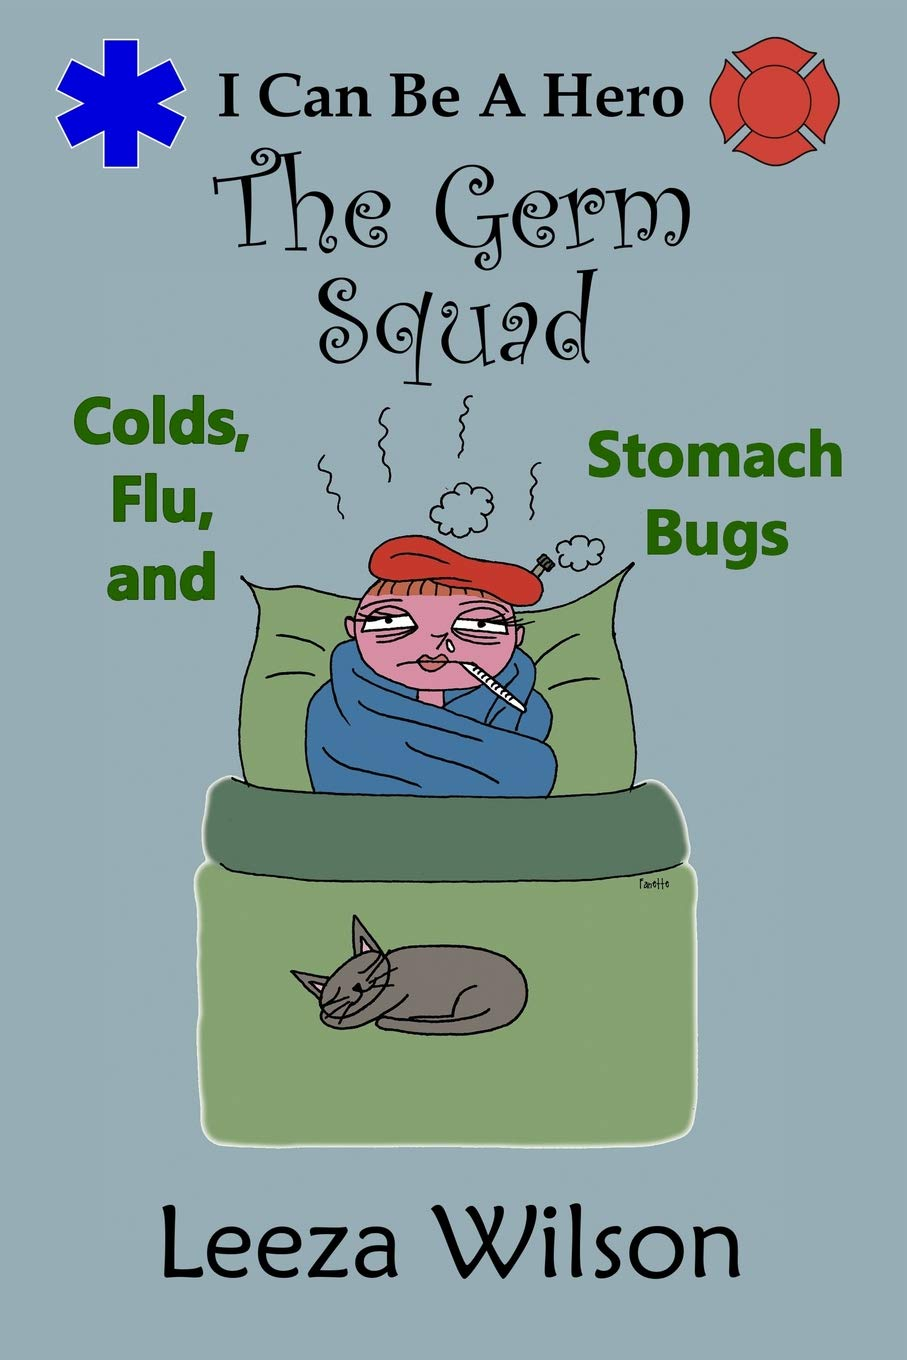 The Germ Squad: Colds, Flu, & Stomach Bugs (I Can Be a Hero) PDF